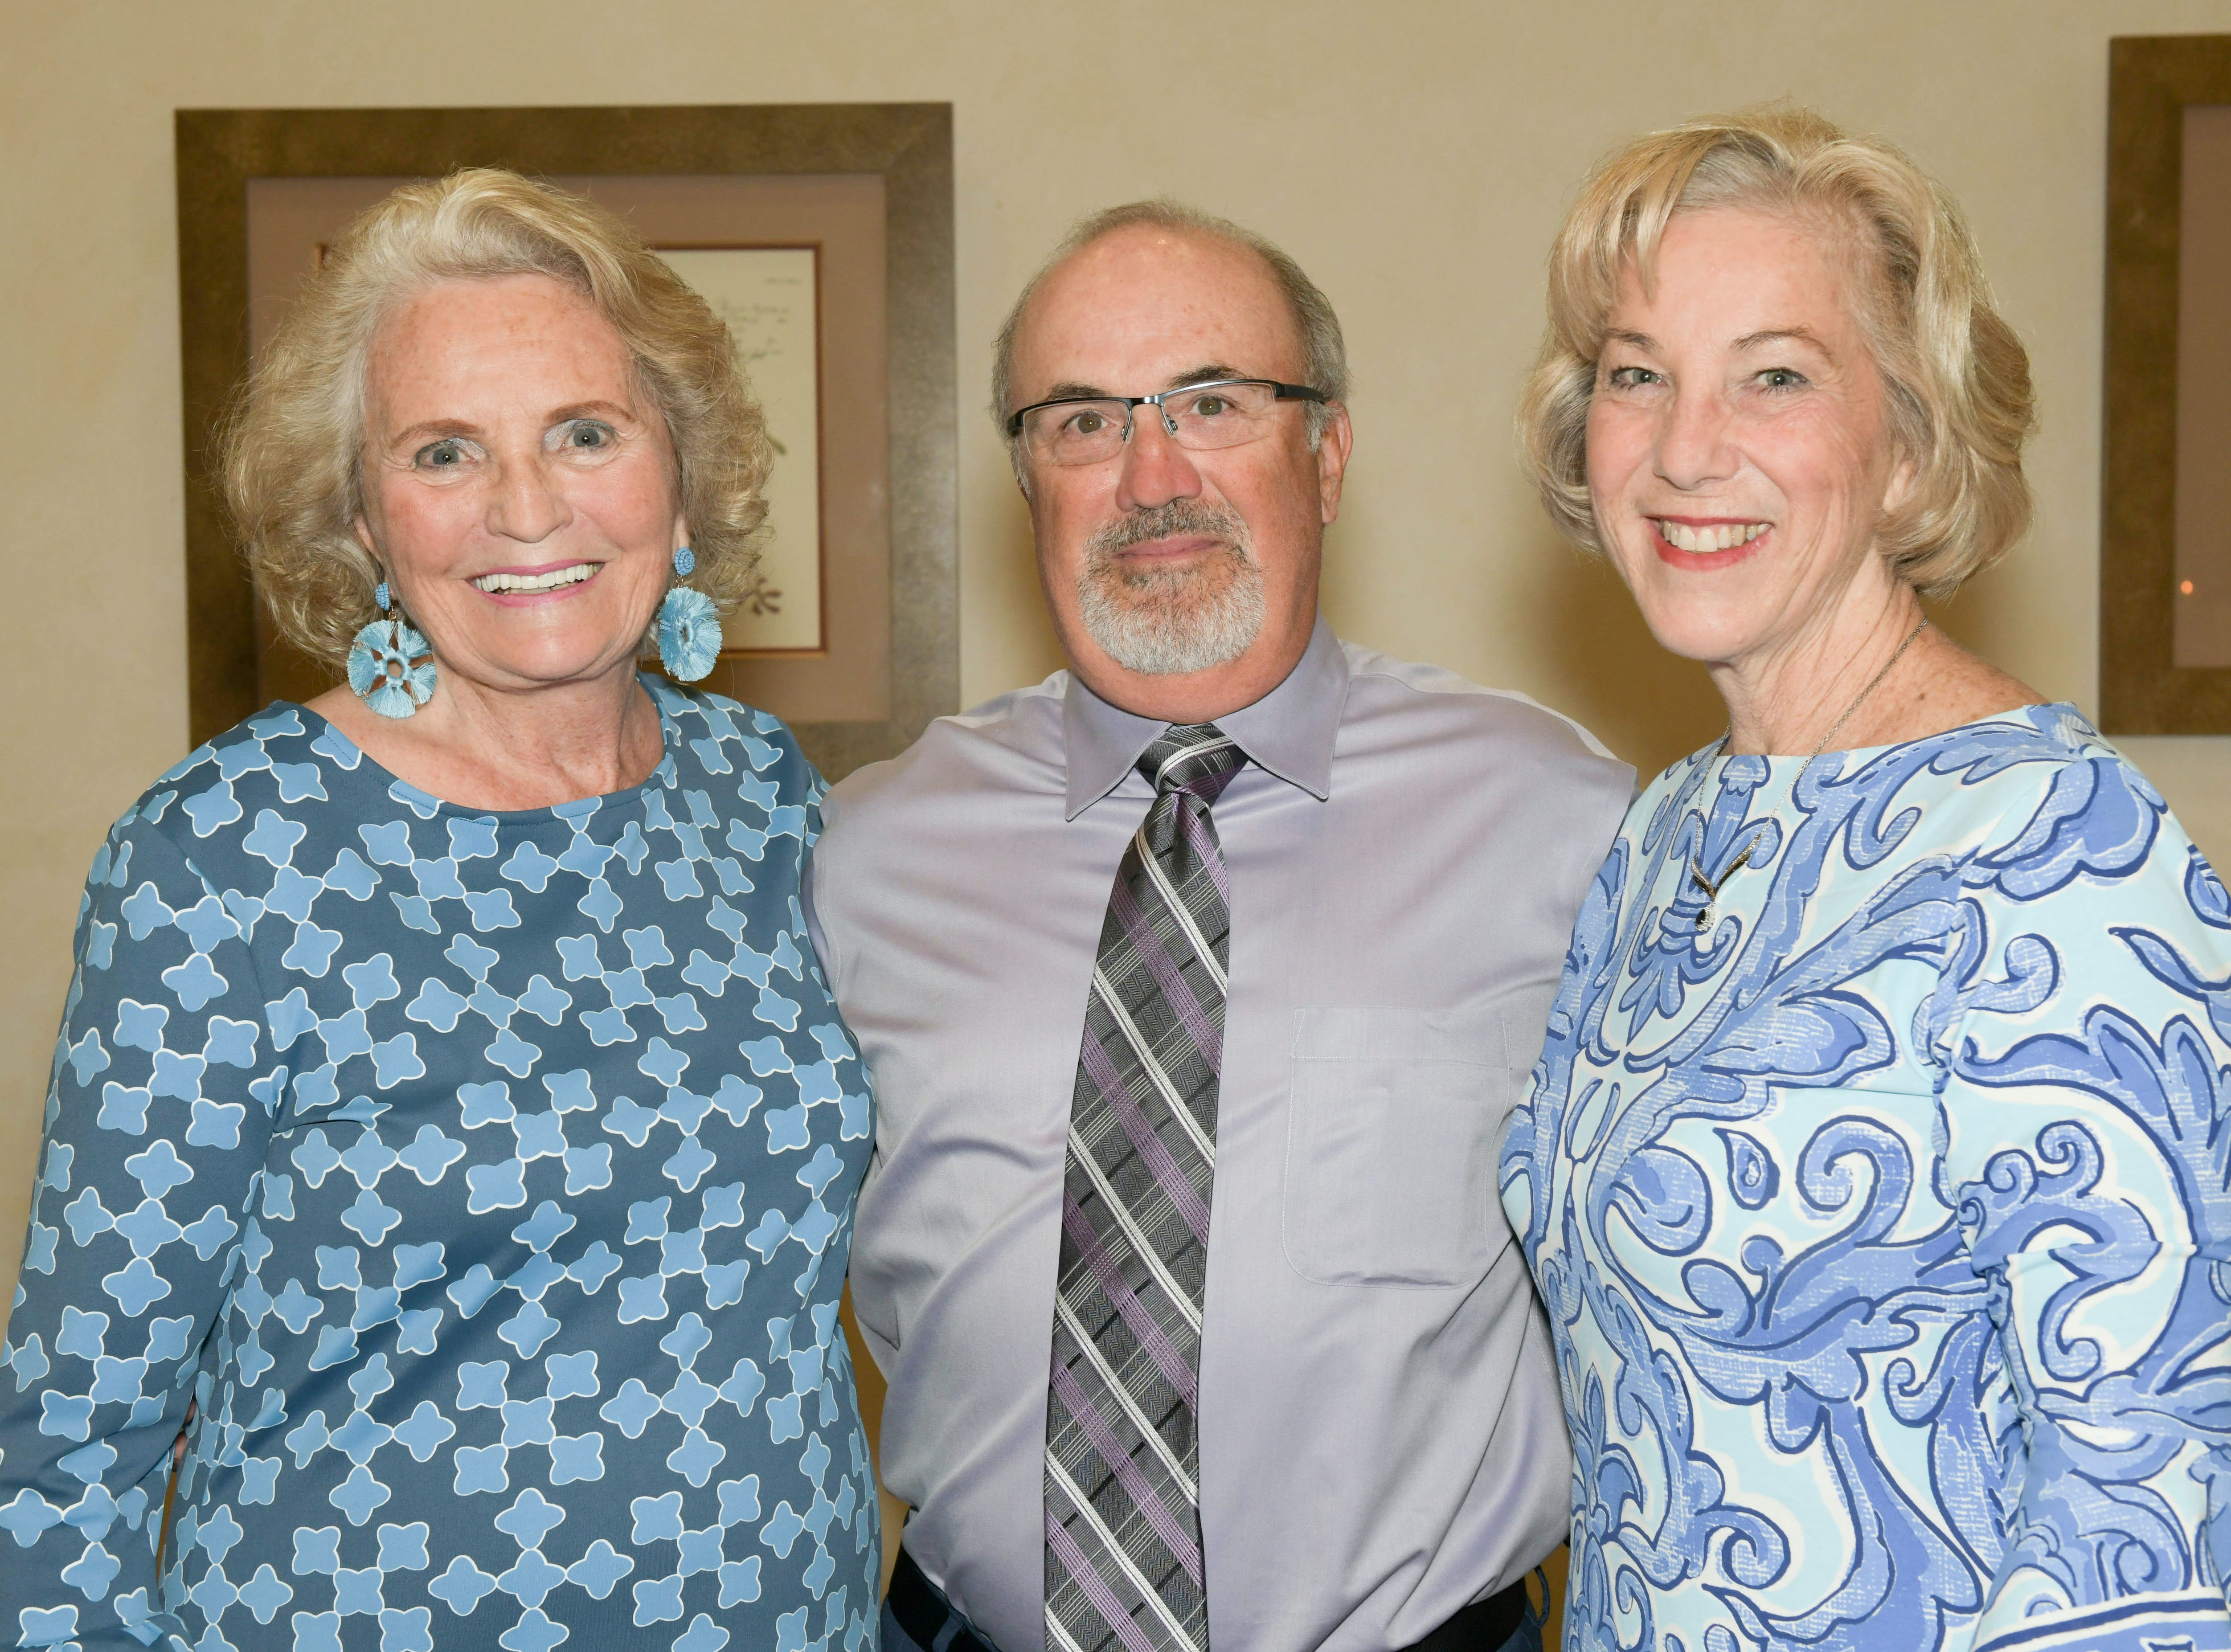 Donna Robart, Michael Coburn and Diane Ludwig